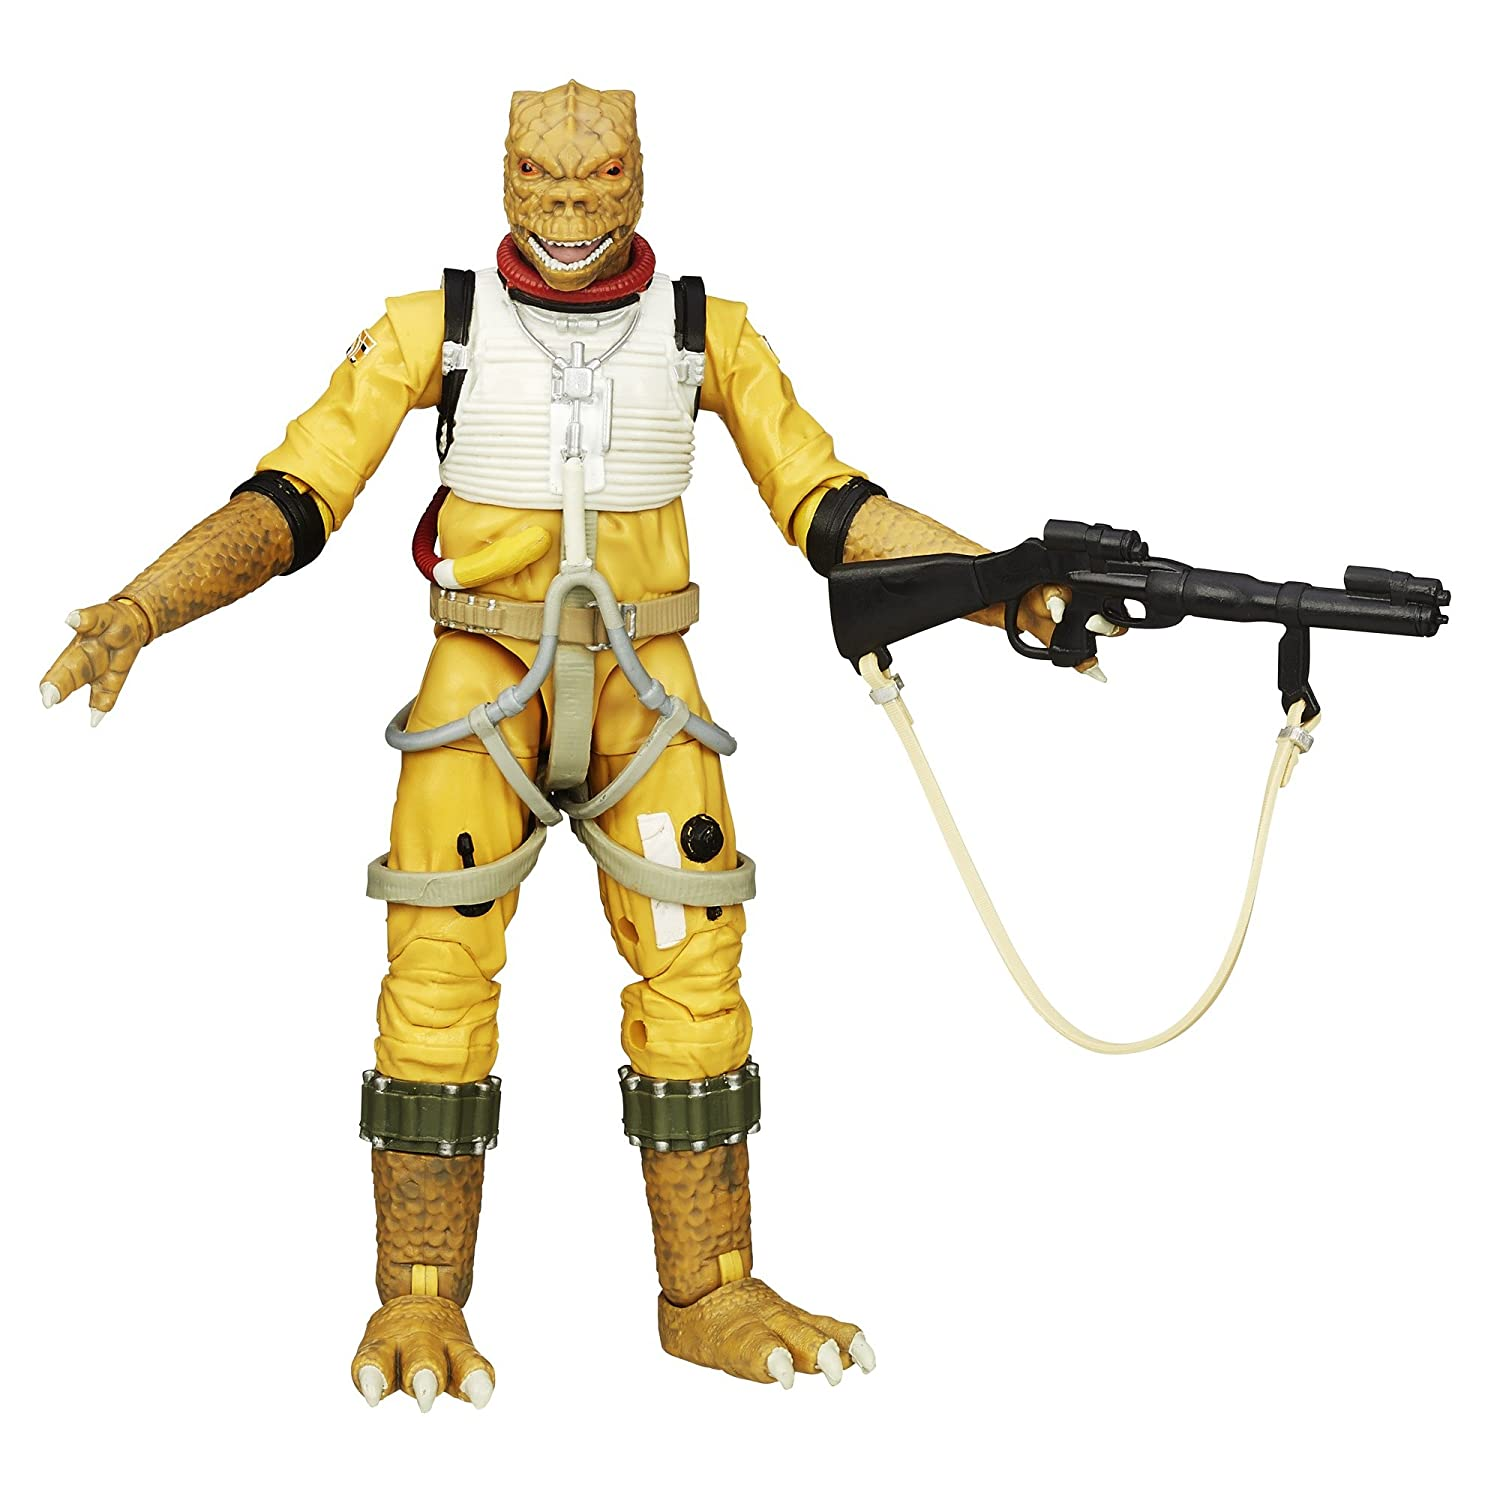 "Star Wars The Black Series Bossk 6"" Figure"